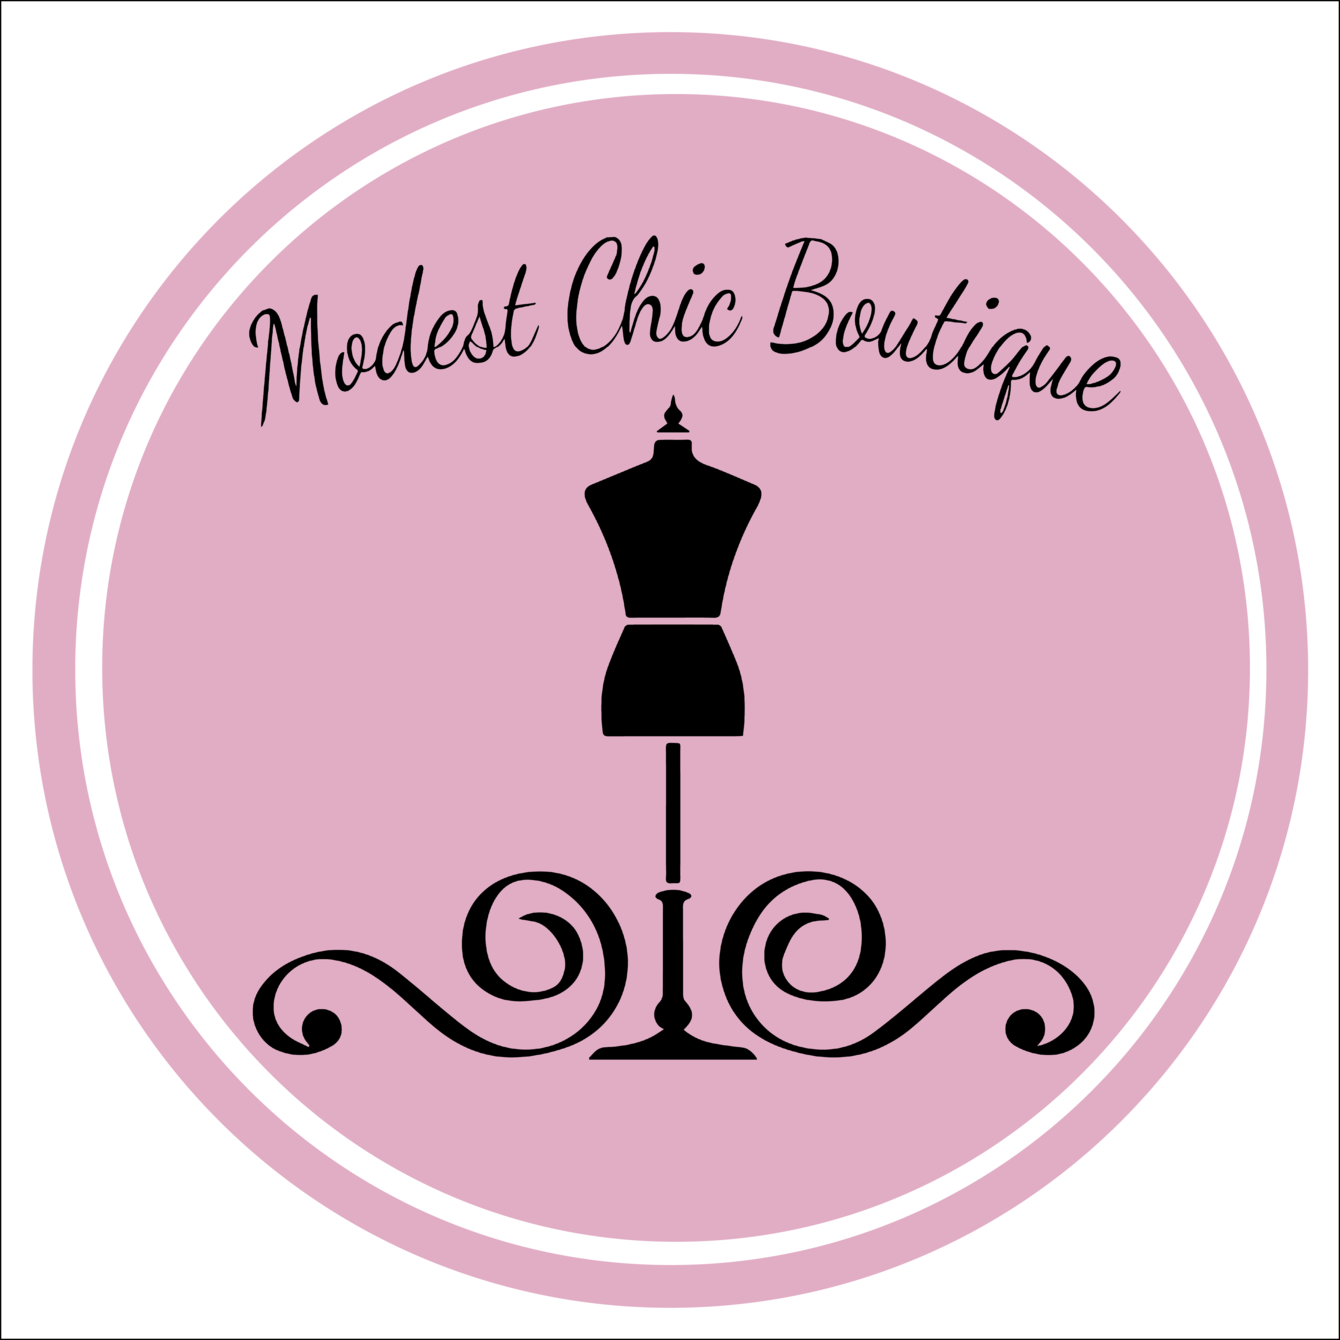 Modest Chic Boutique